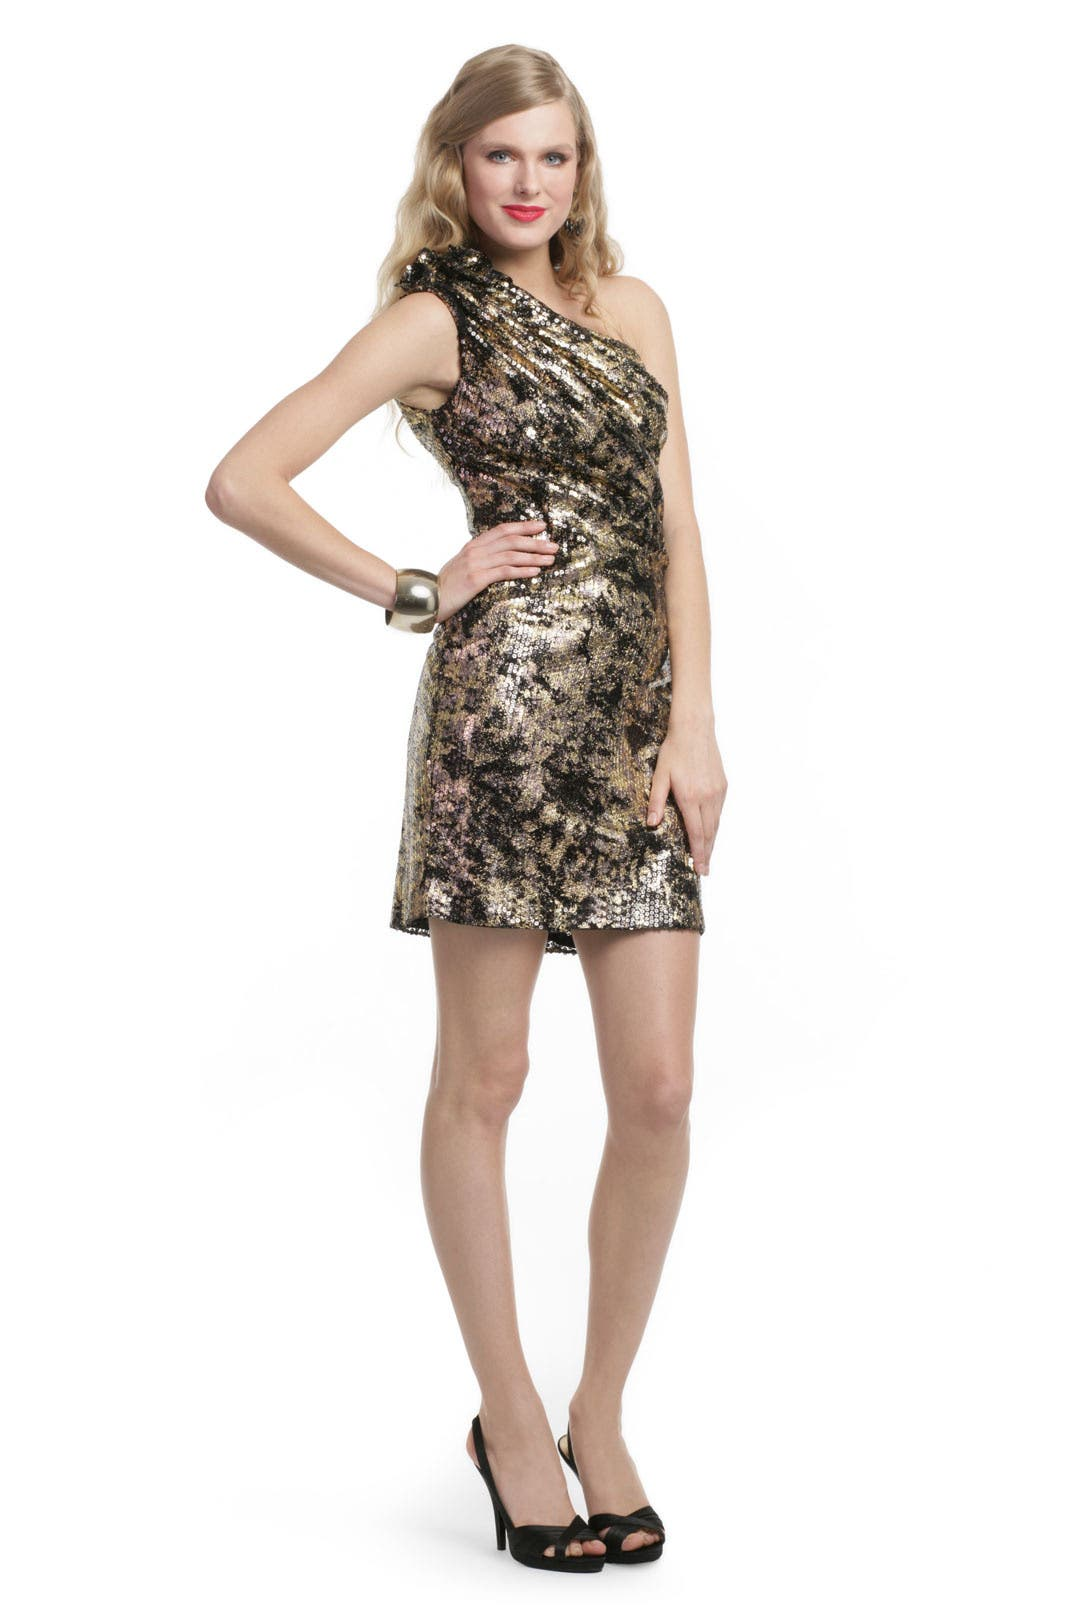 Lights and Leopard Dress by Mark & James by Badgley Mischka